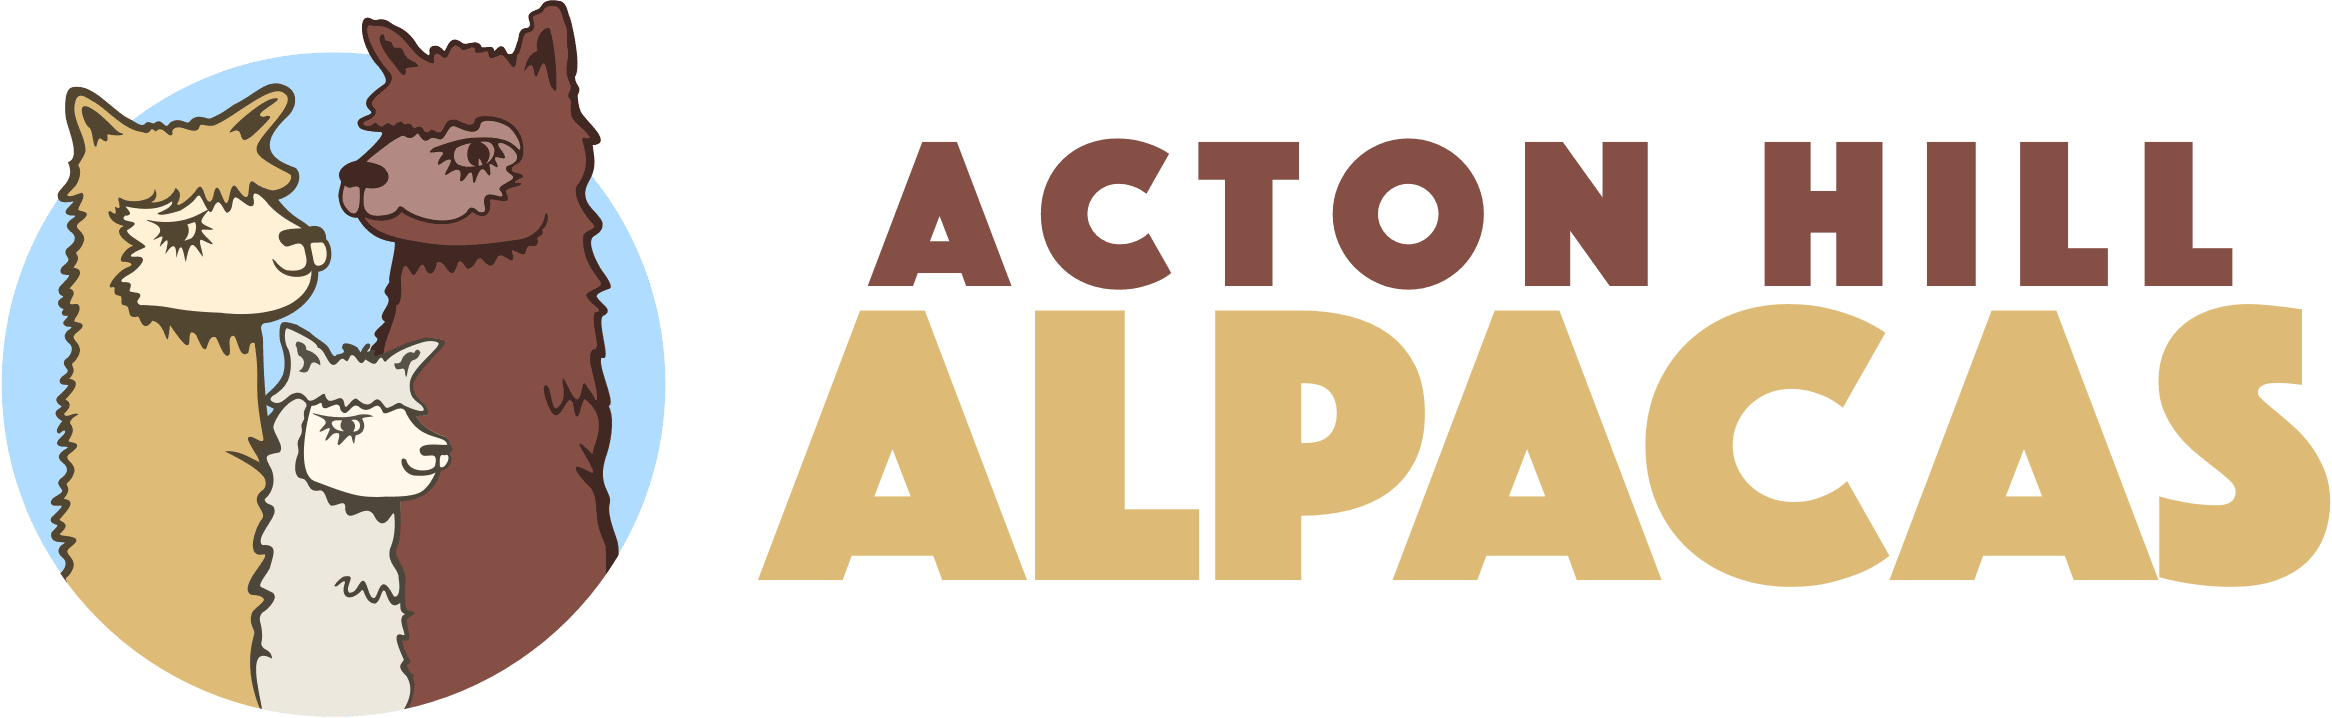 Acton Hill Alpacas logo